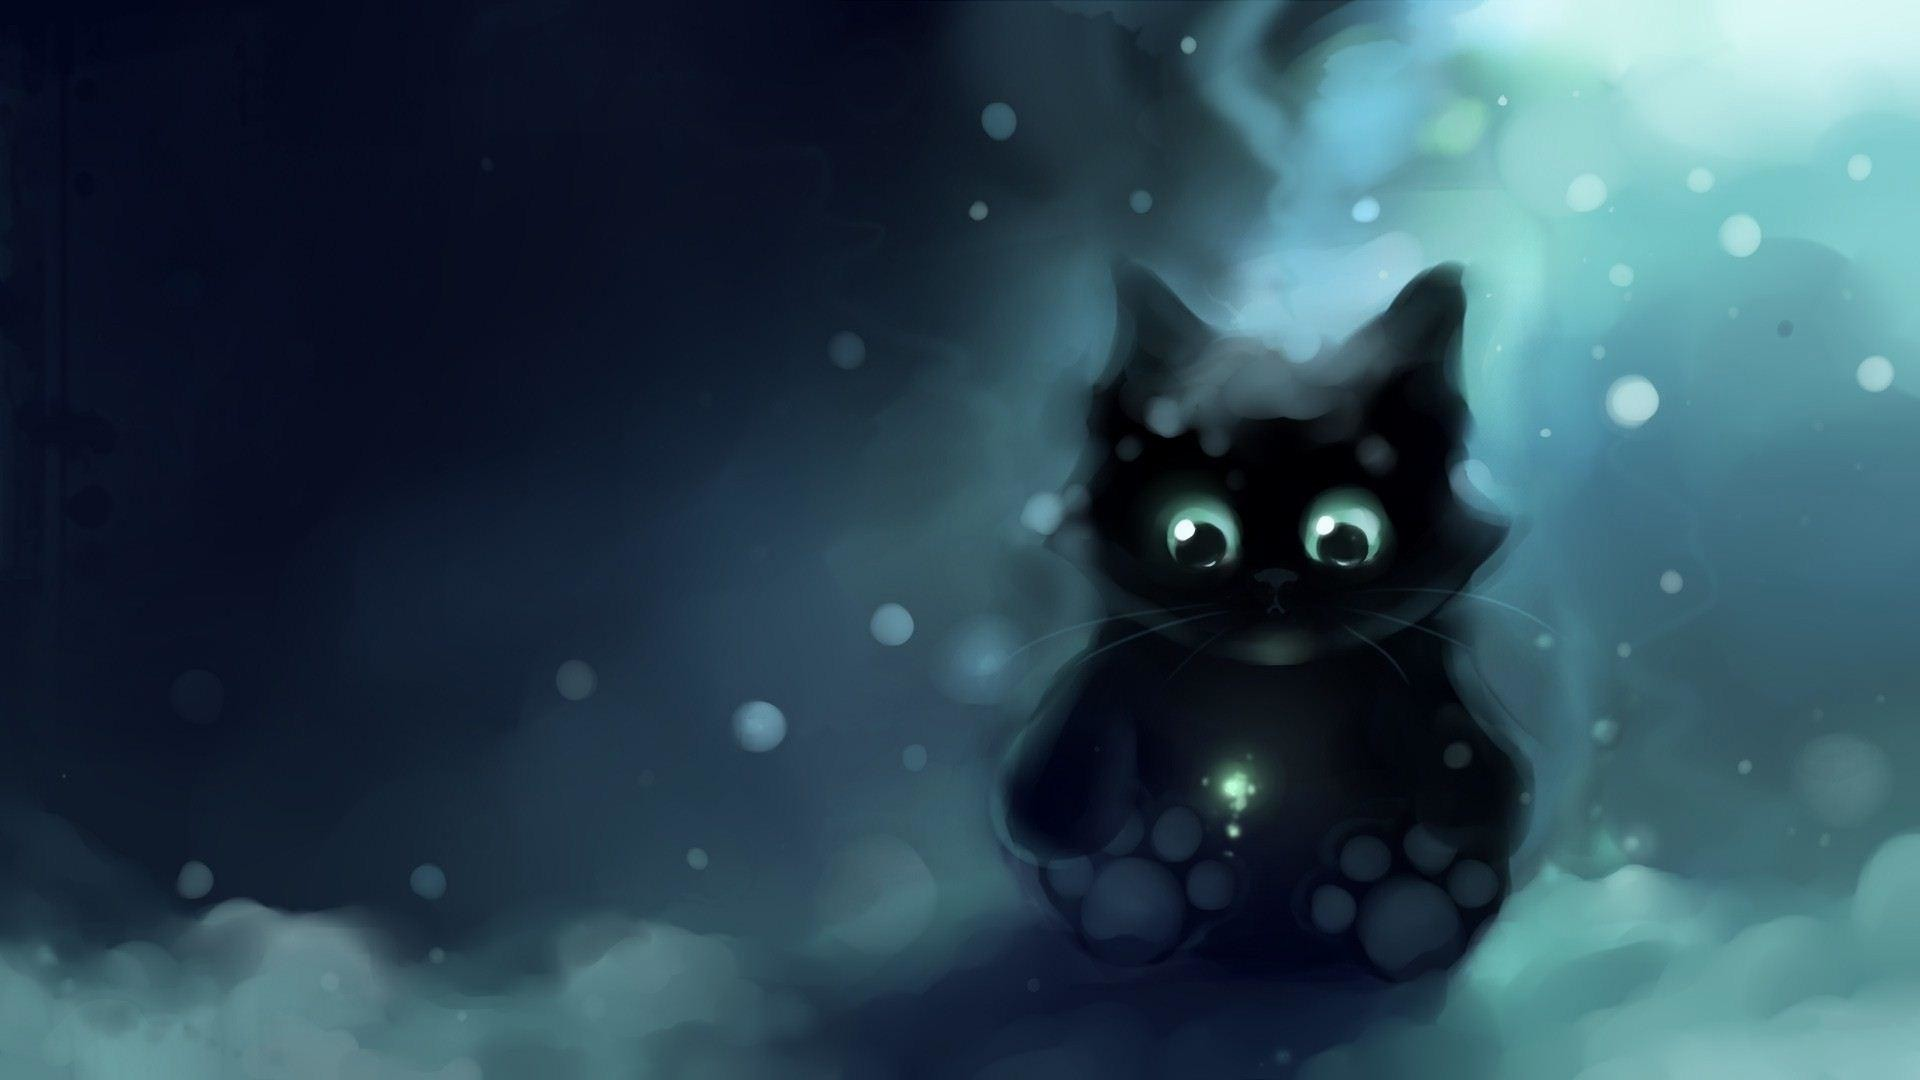 1920x1080 wallpaper.wiki-Anime-Cat-Background-Full-HD-PIC-